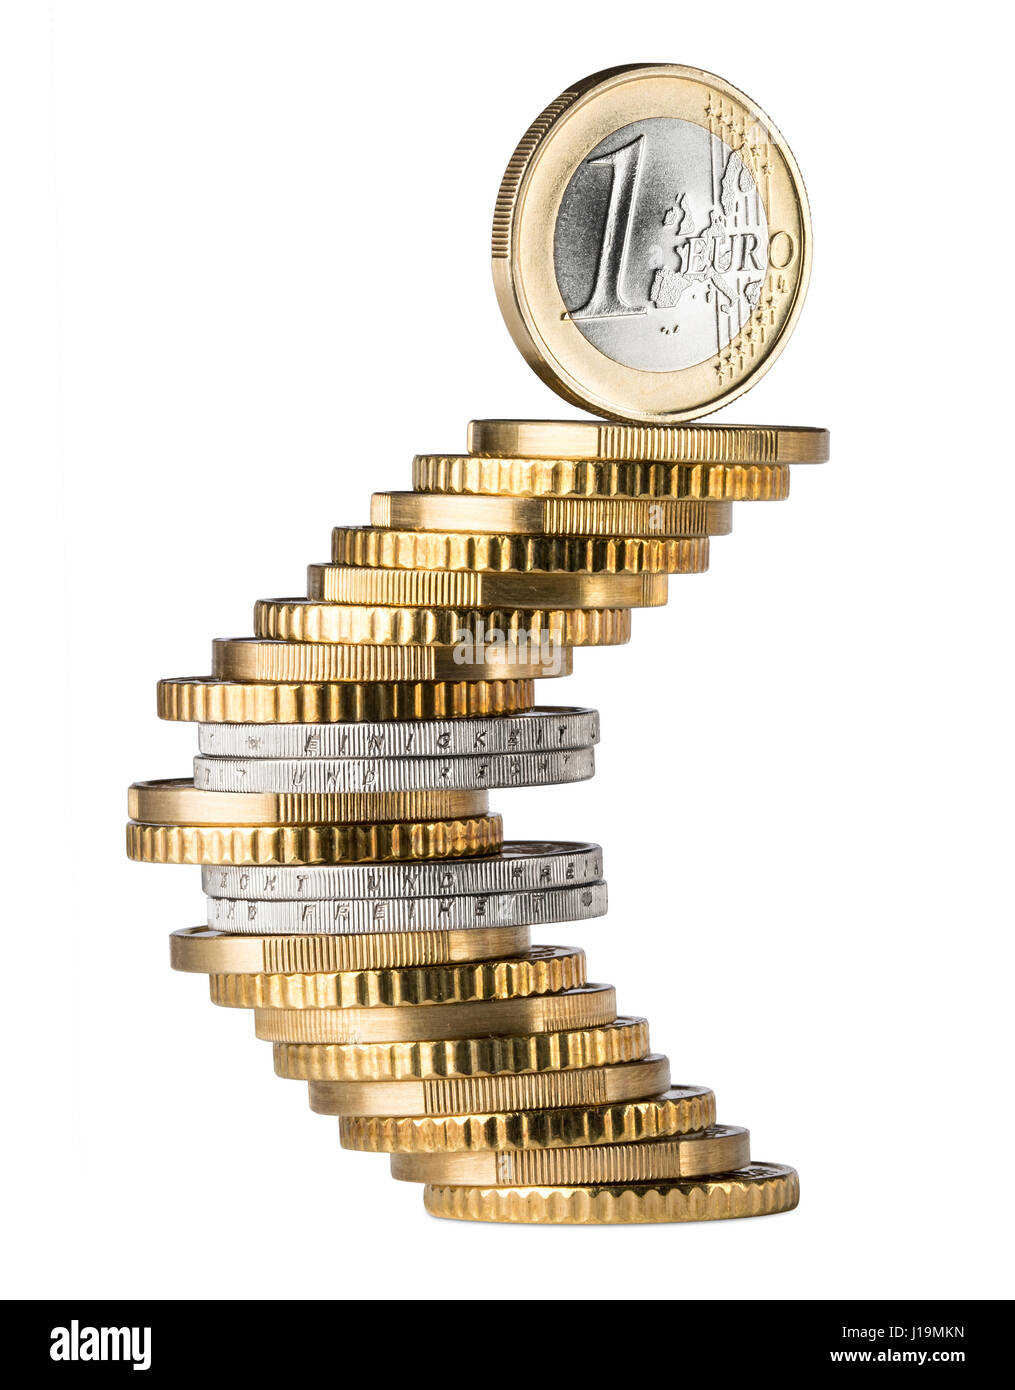 One euro coin standing on top of coin stack shaping the euro one euro coin standing on top of coin stack shaping the euro currency symbol isolated on white background biocorpaavc Images